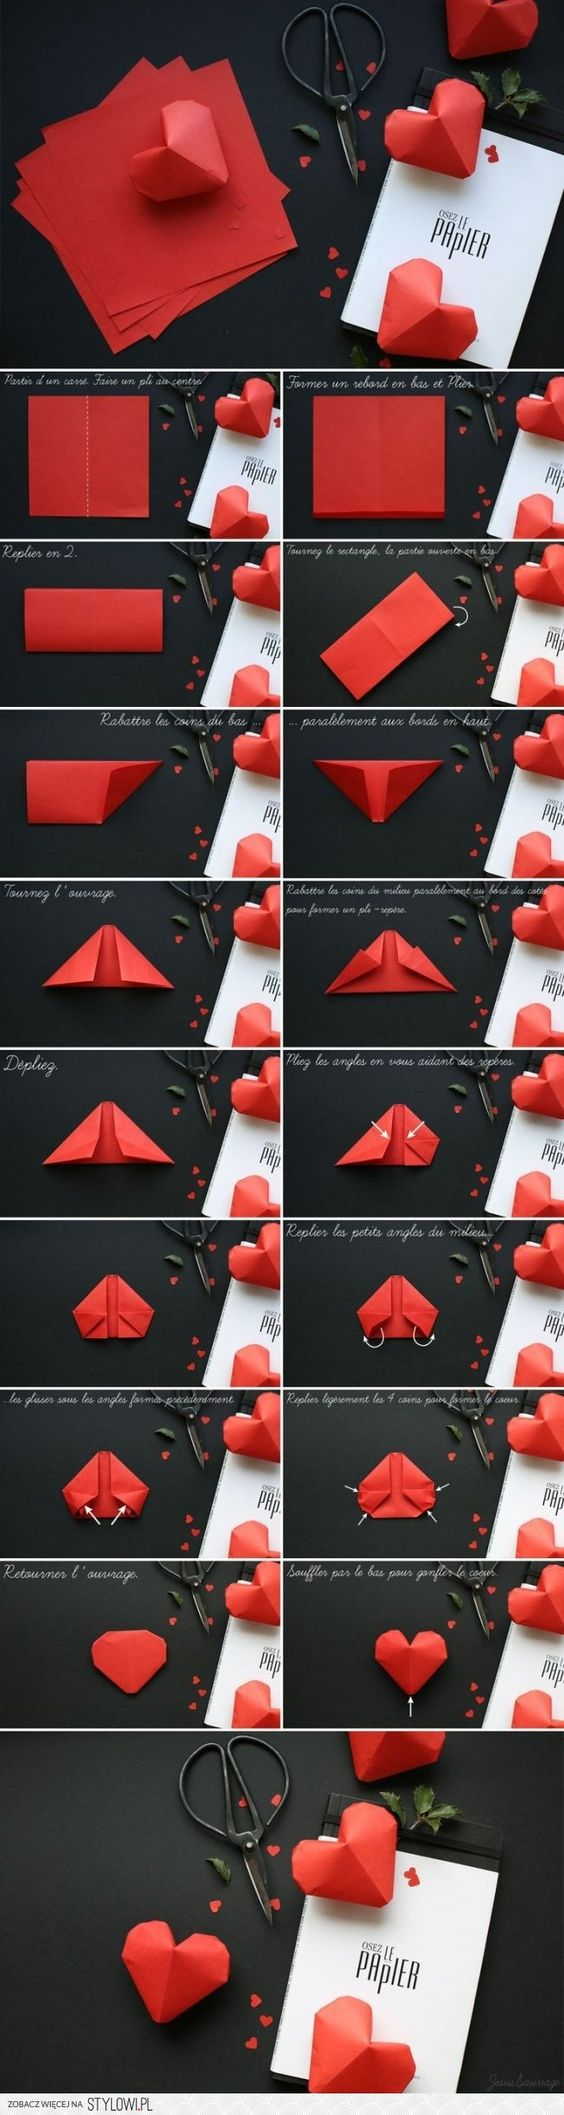 origami heart, red heart, heart decoration, heart crafts, origami for family